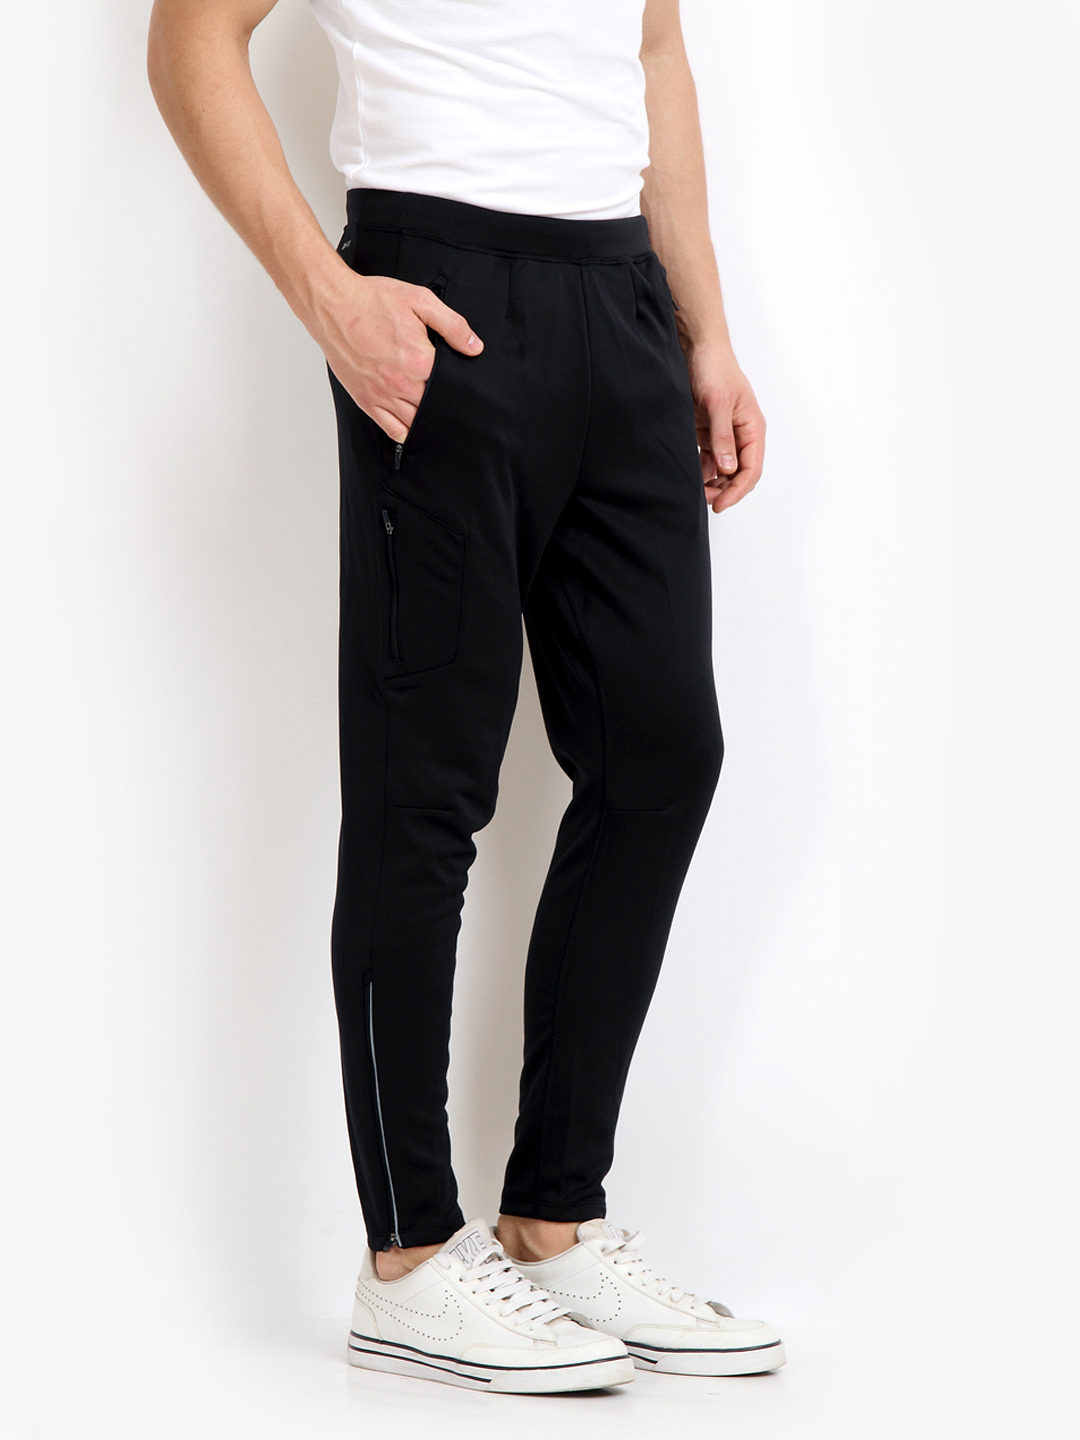 more track pants from nike all products from nike